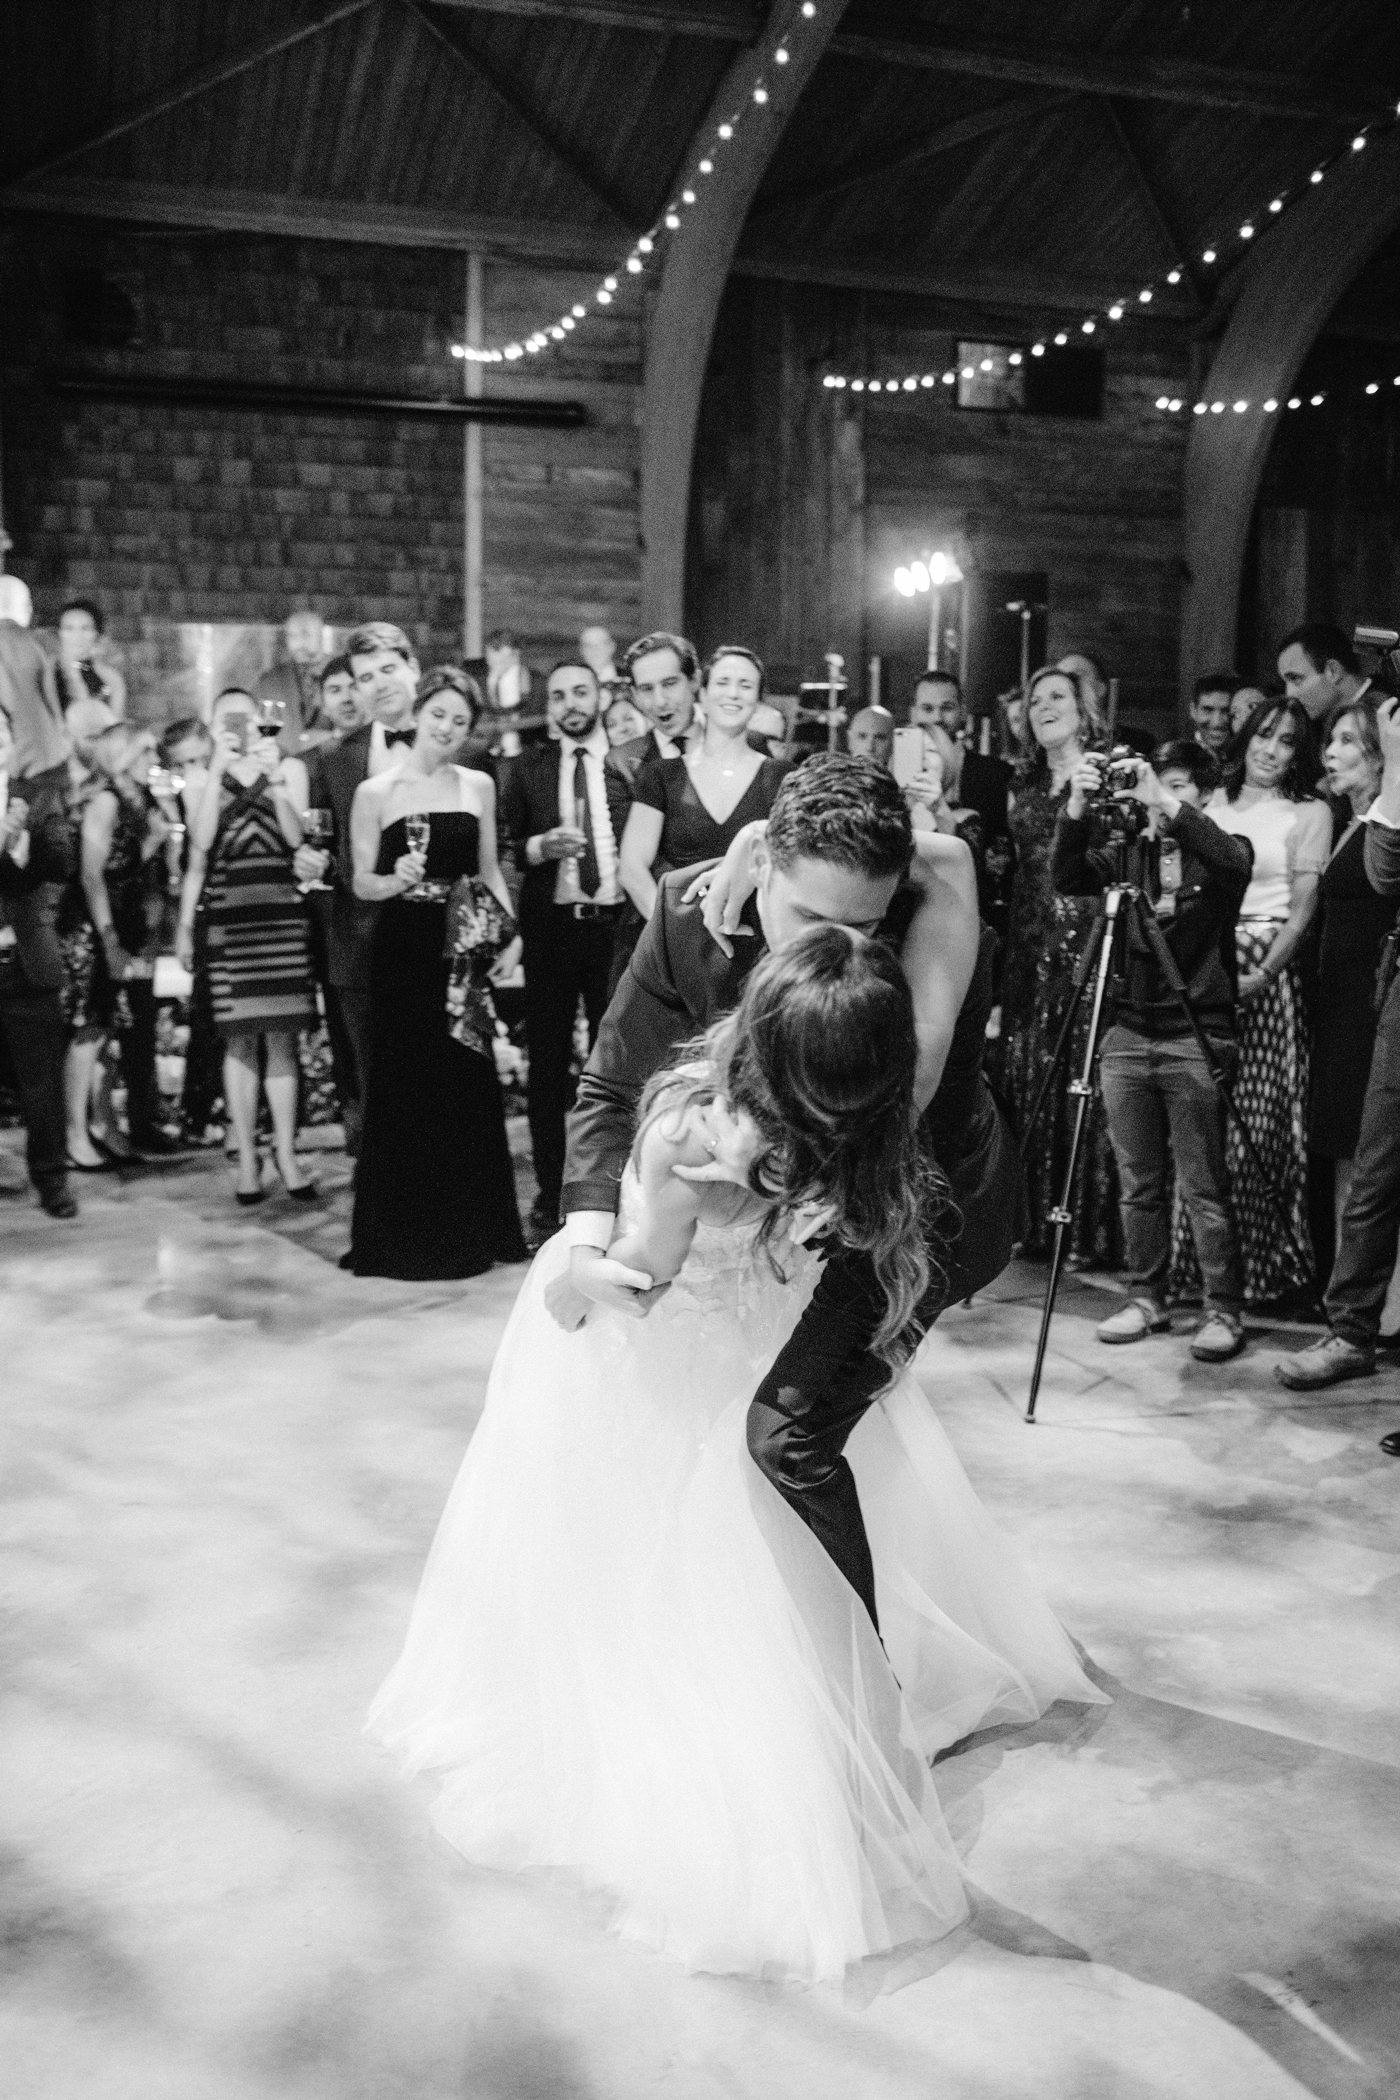 groom dips bride during first dance surrounded by wedding guests